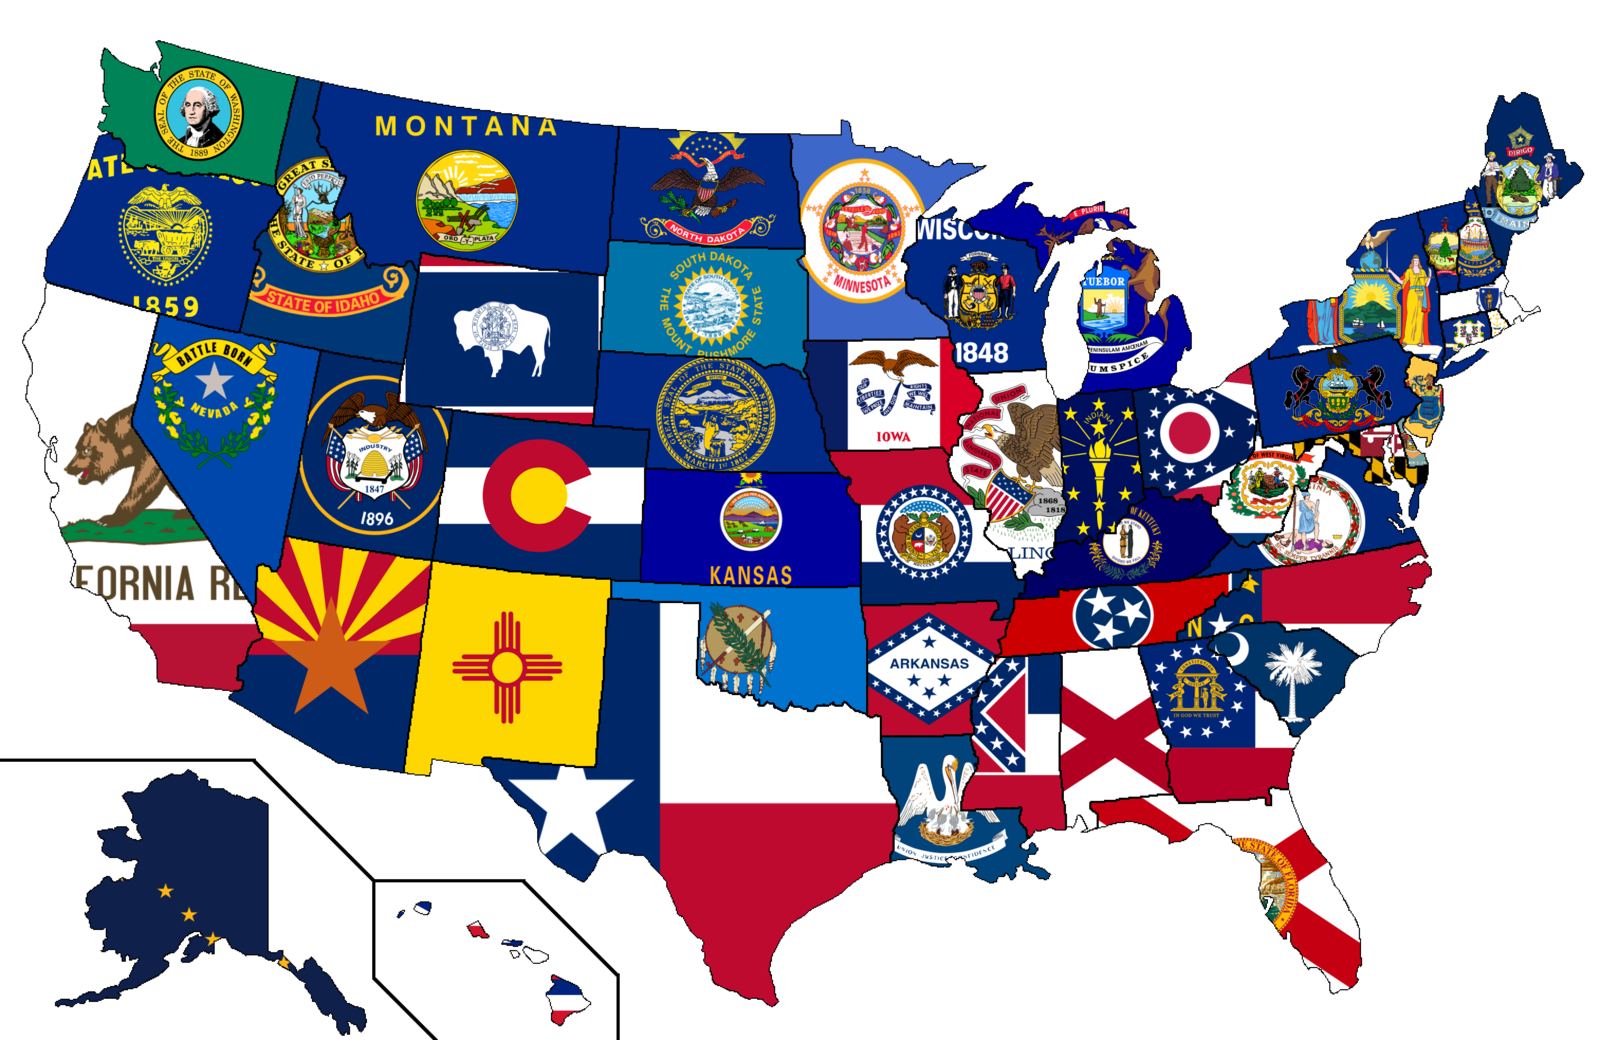 Our U.S. state and territory flags come in a wide variety of sizes and conform to all official specifications. Emblems and designs are executed with the highest possible degree of accuracy in regard to detail, color shades, placement and proportion to flag size.